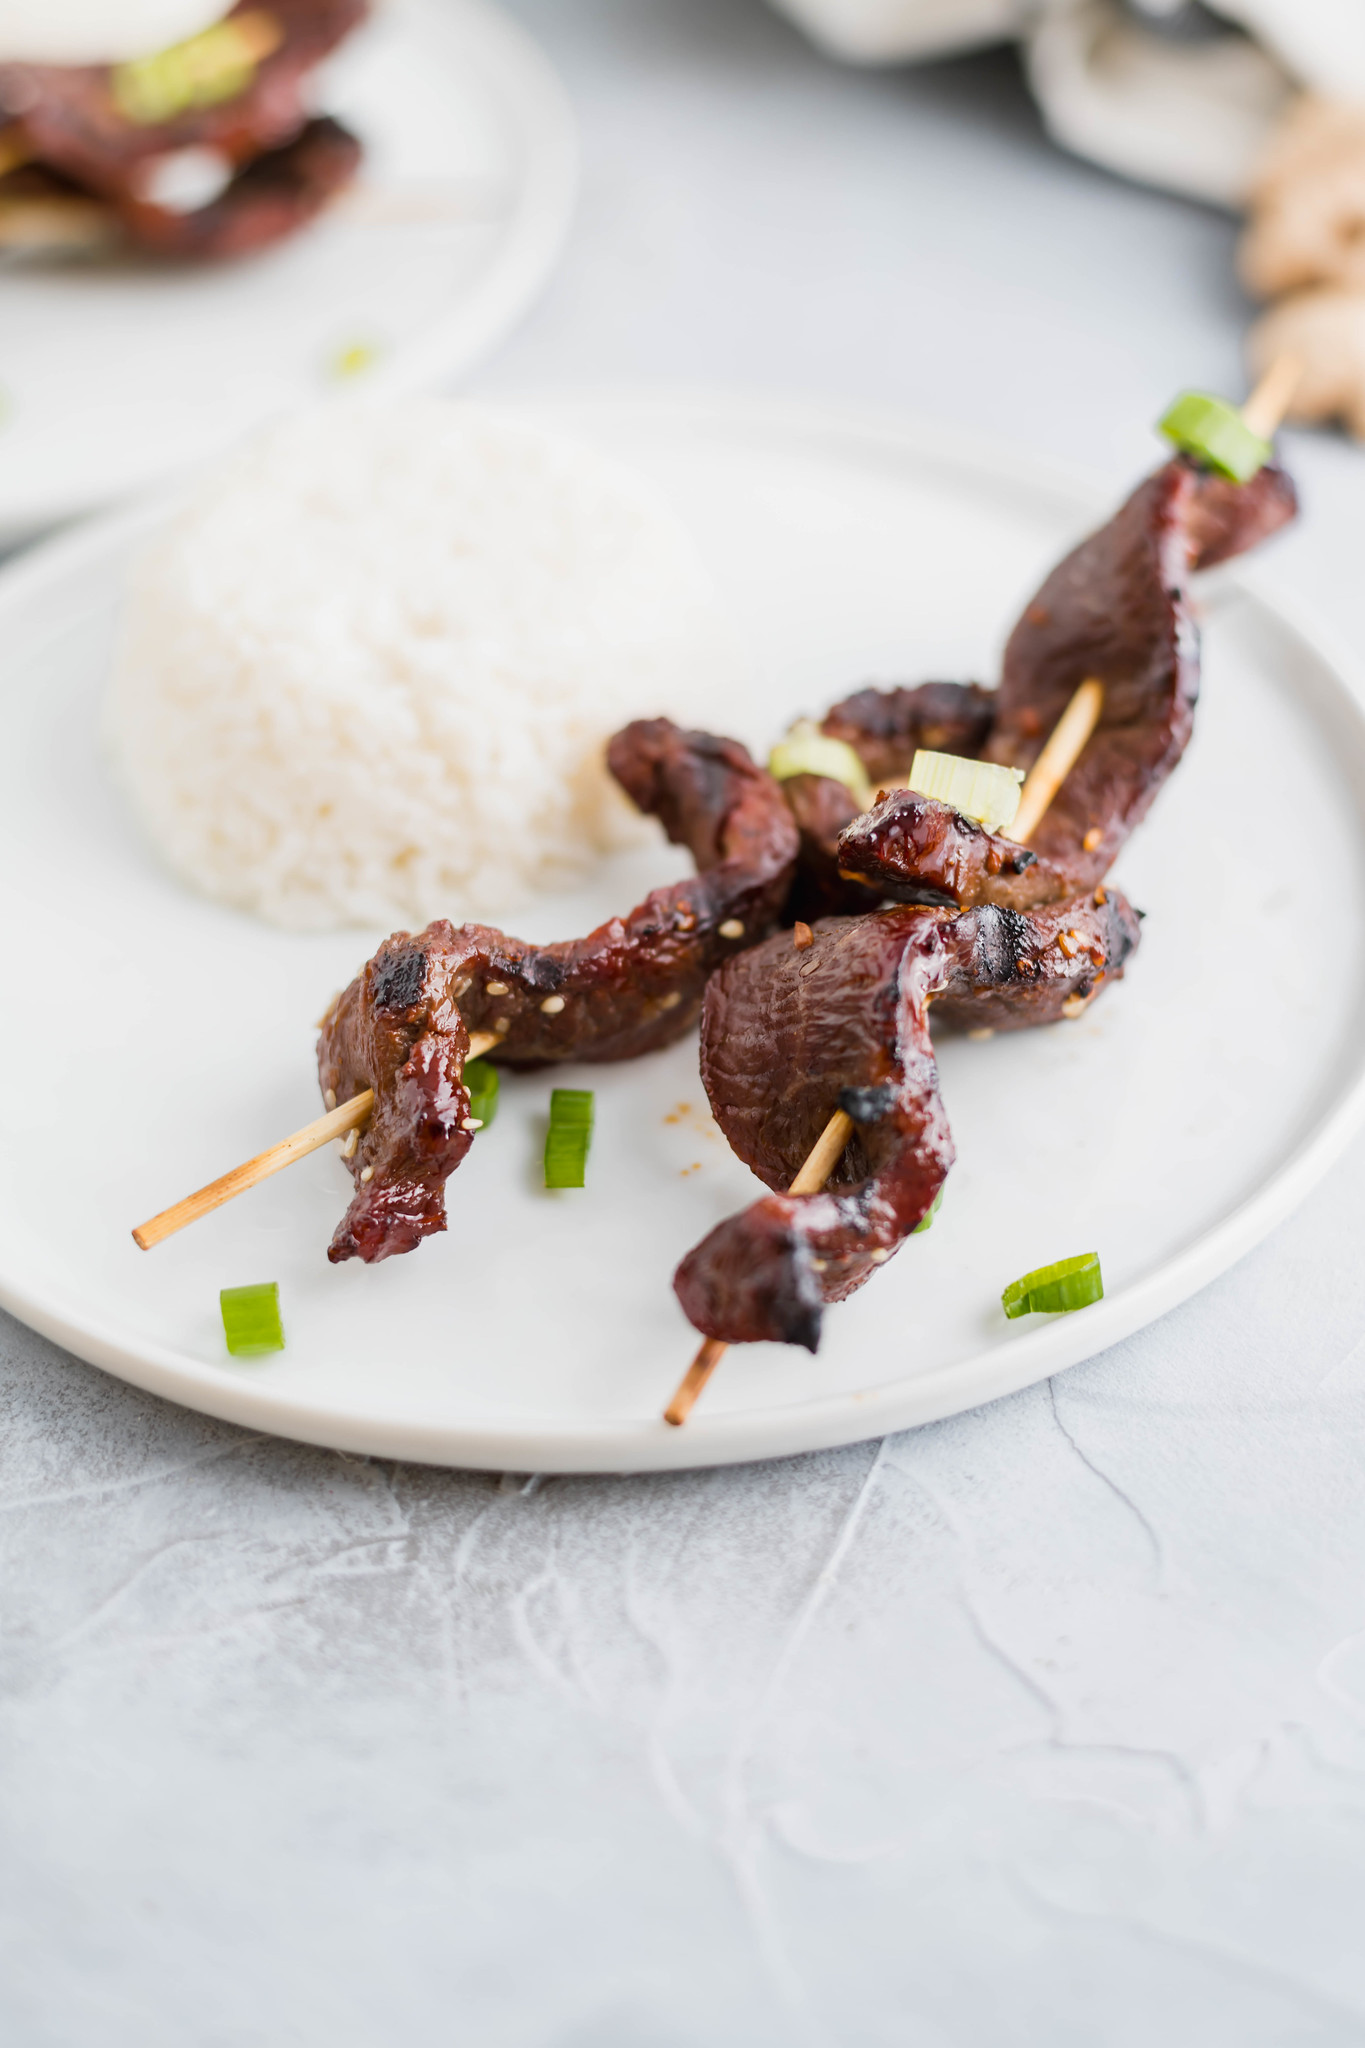 Thinly sliced flank steak in a delicious Asian marinade and threaded onto skewers make up these delicious Grilled Steak Kabobs. Sure to be a summertime favorite.